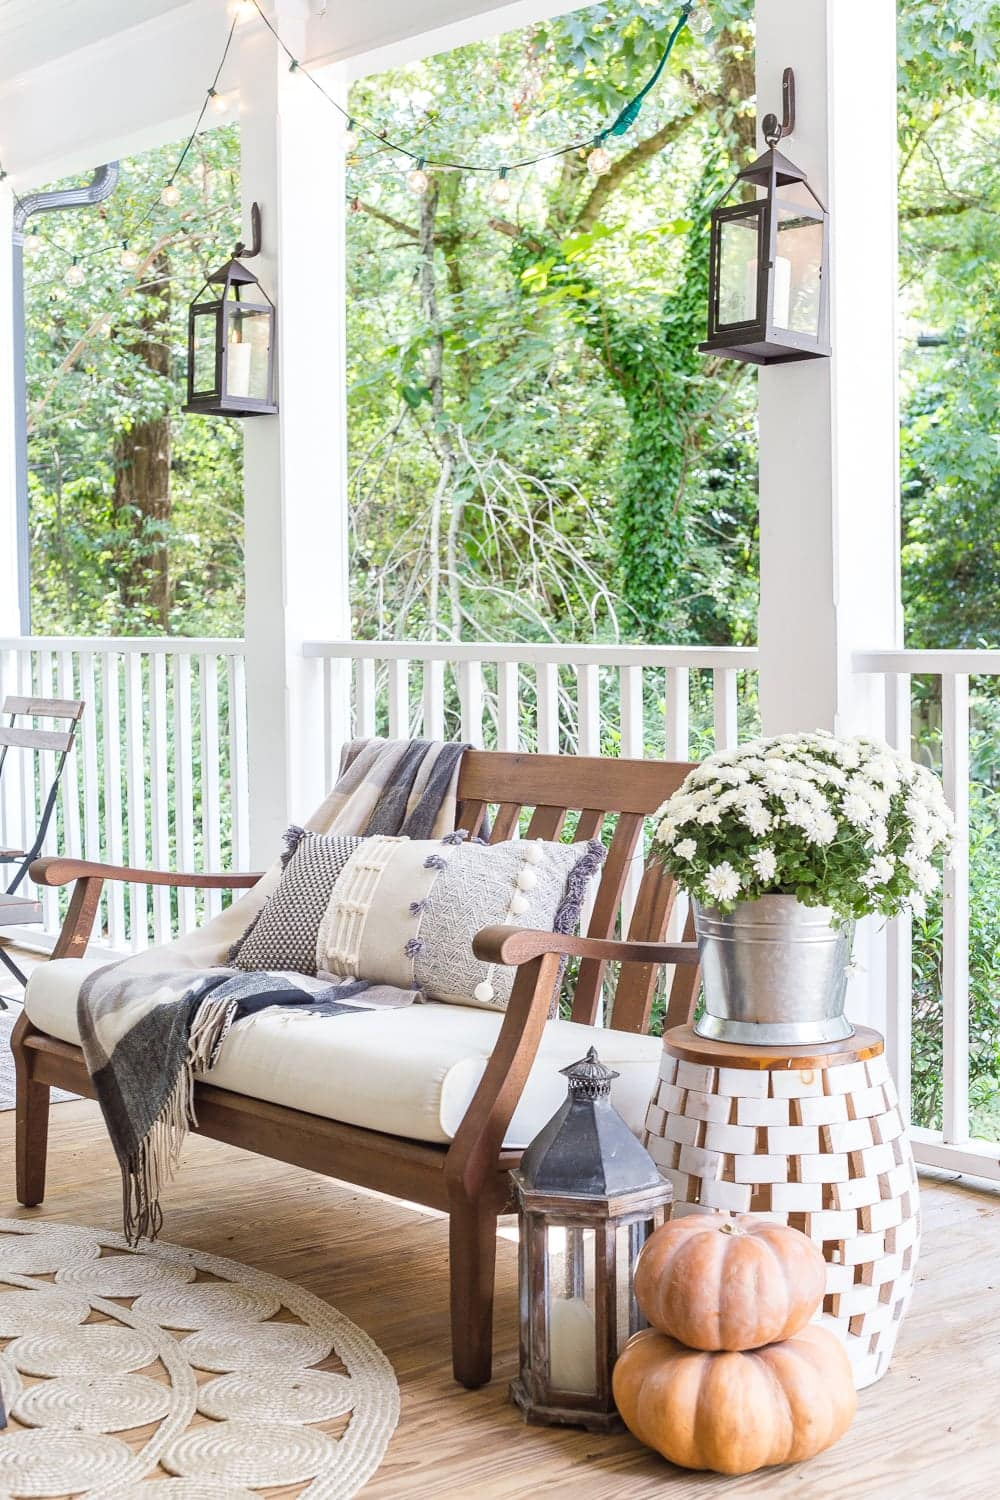 cozy fall porch with plaid throw blankets, textured pillows, pumpkins, lanterns, mums, and string lights